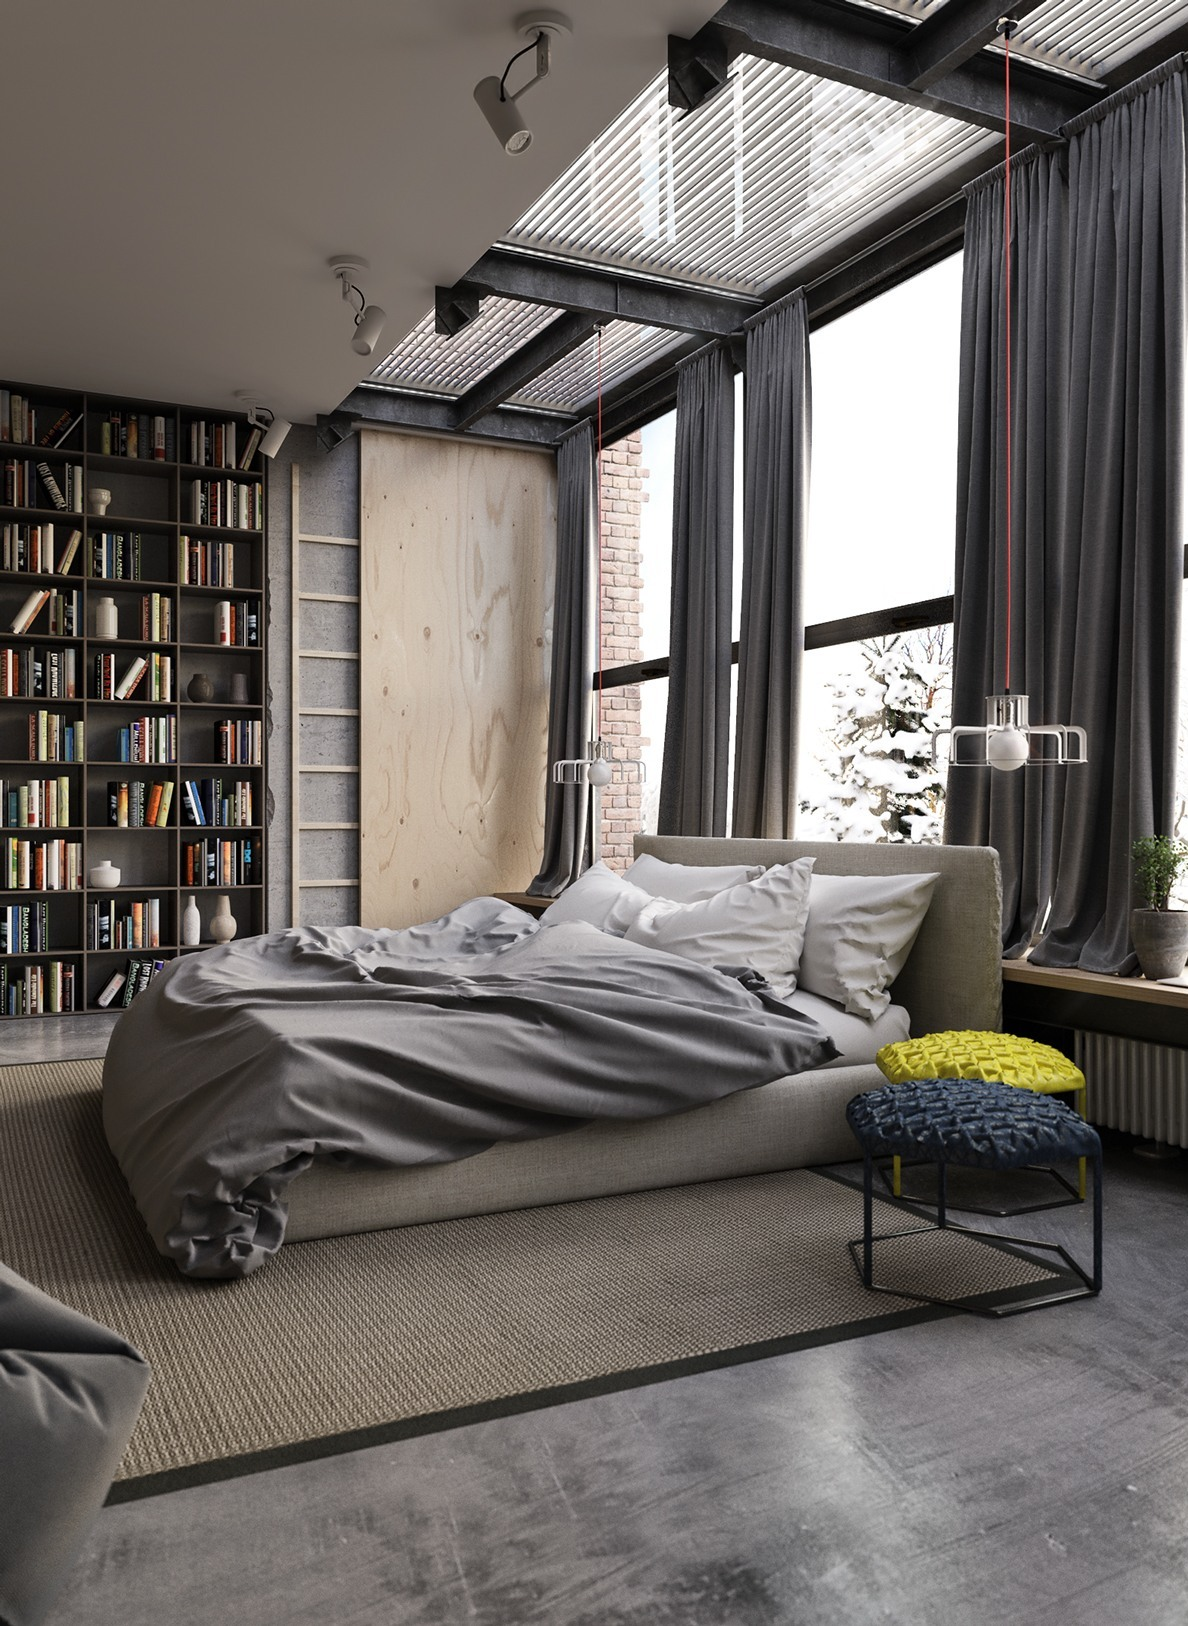 25 industrial bedroom interior designs for elegant bedroom Elegance decor